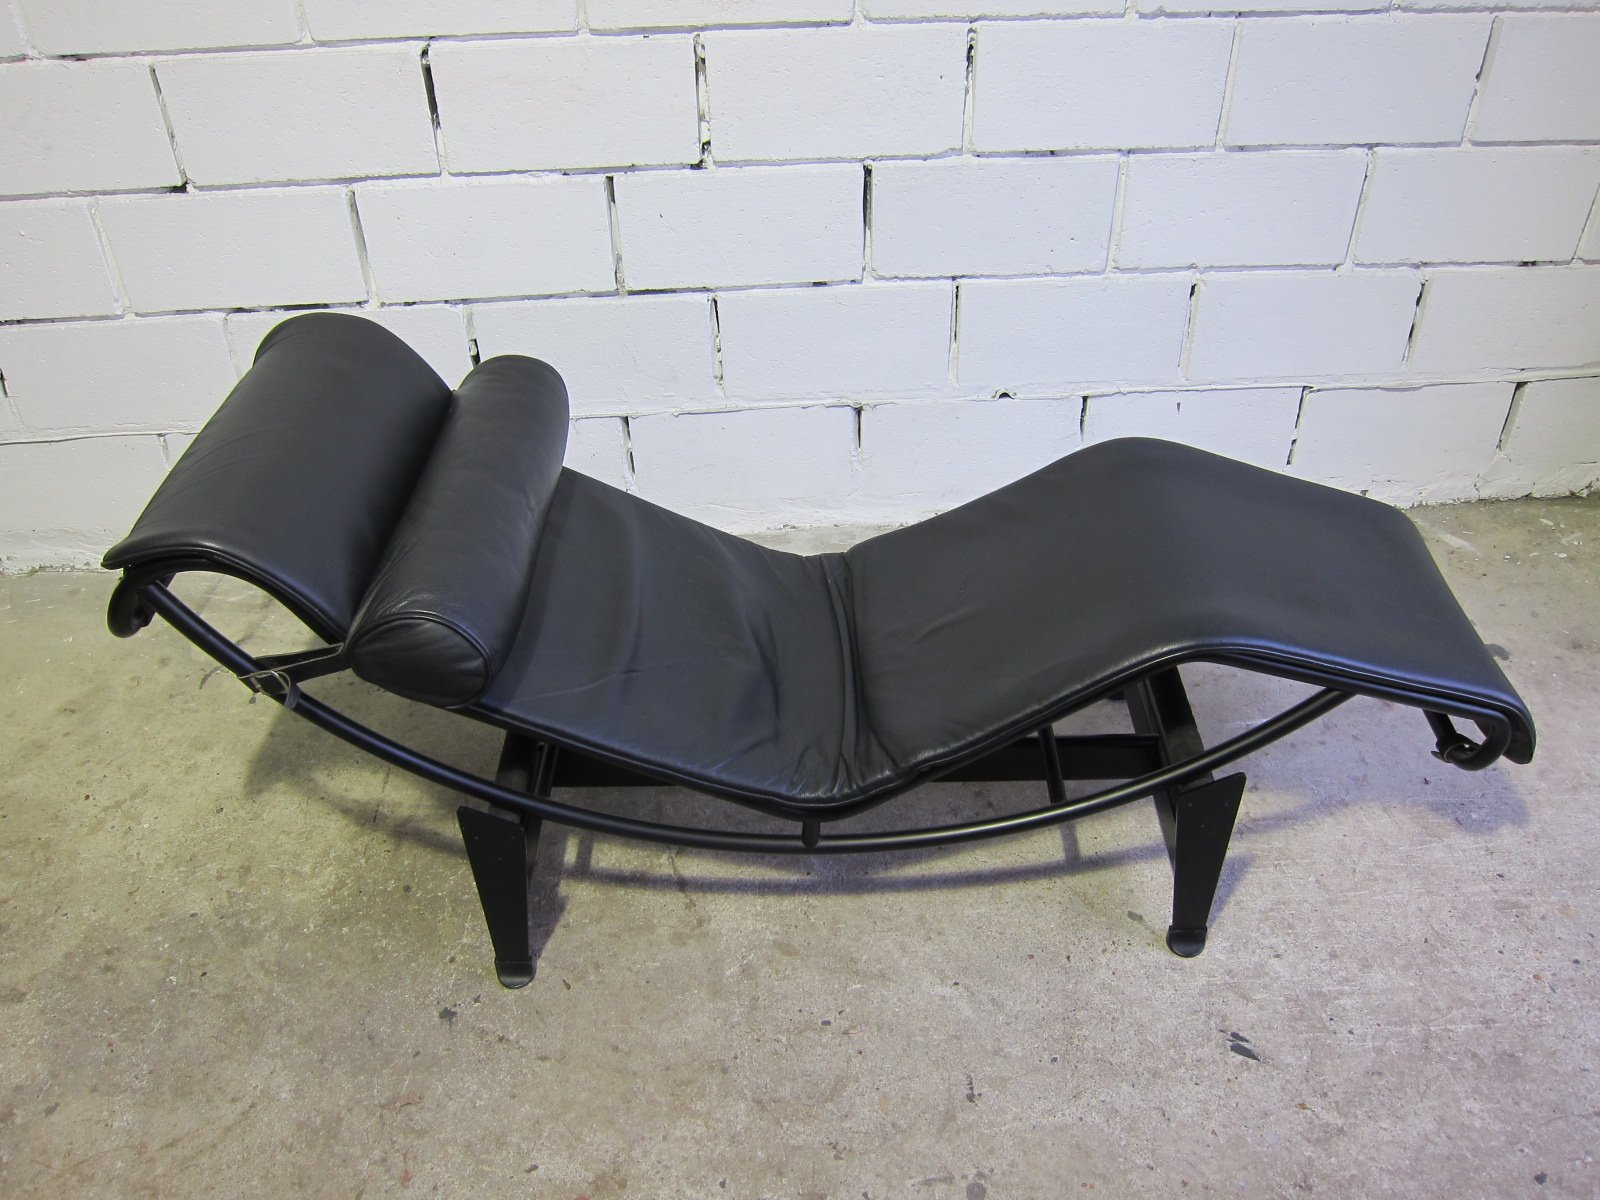 Vintage lc4 chaise lounge by le corbusier for cassina for Chaise lounge cassina